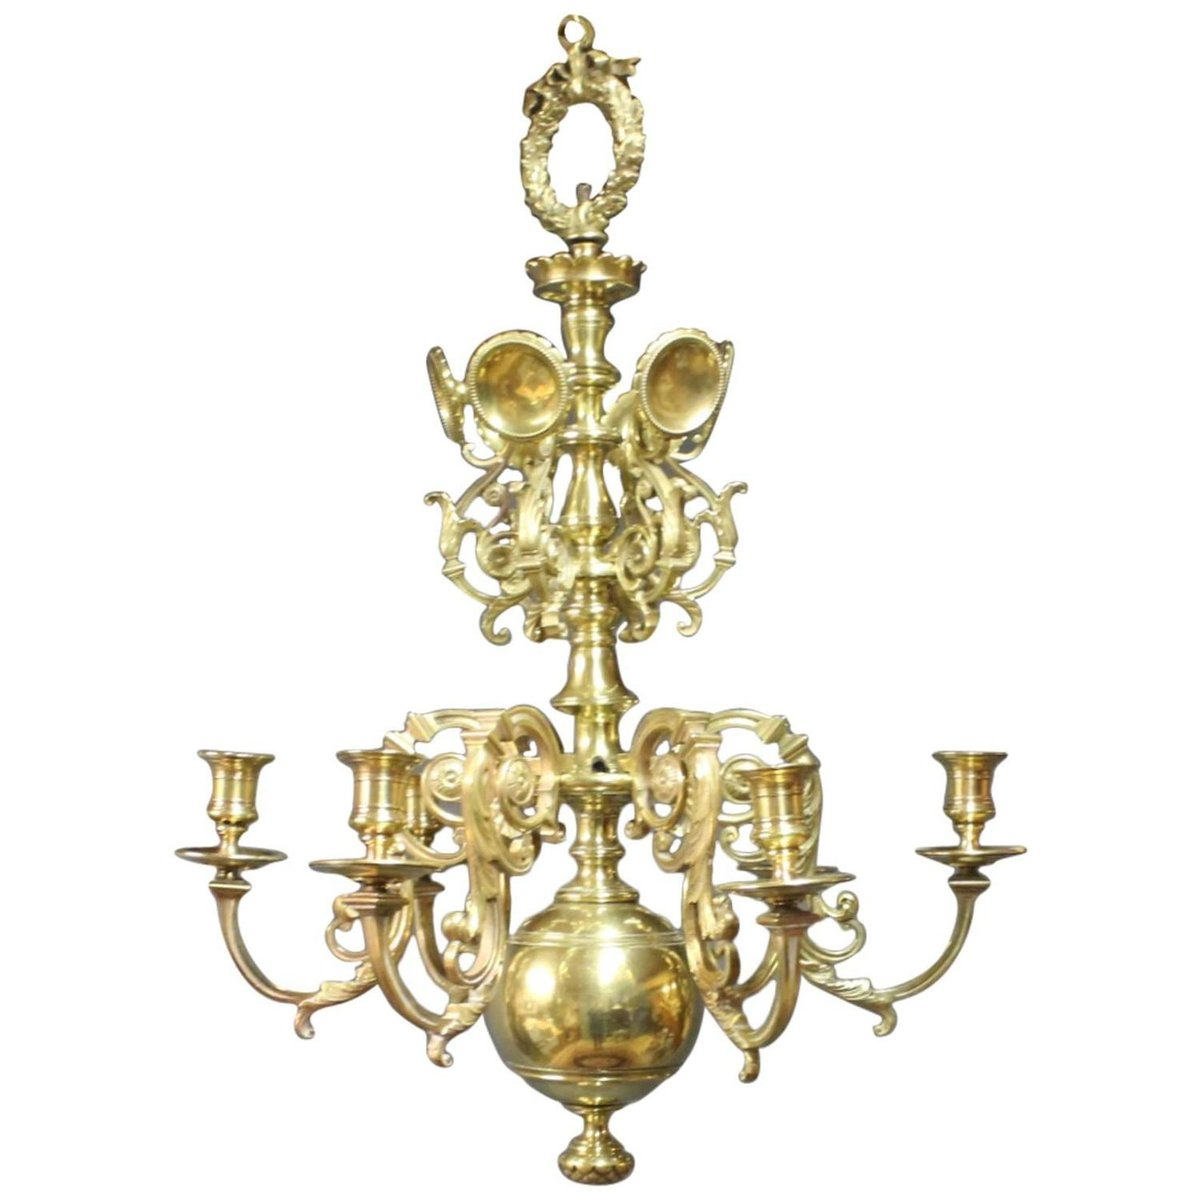 antique brass church chandelier 1850s en vente sur pamono. Black Bedroom Furniture Sets. Home Design Ideas